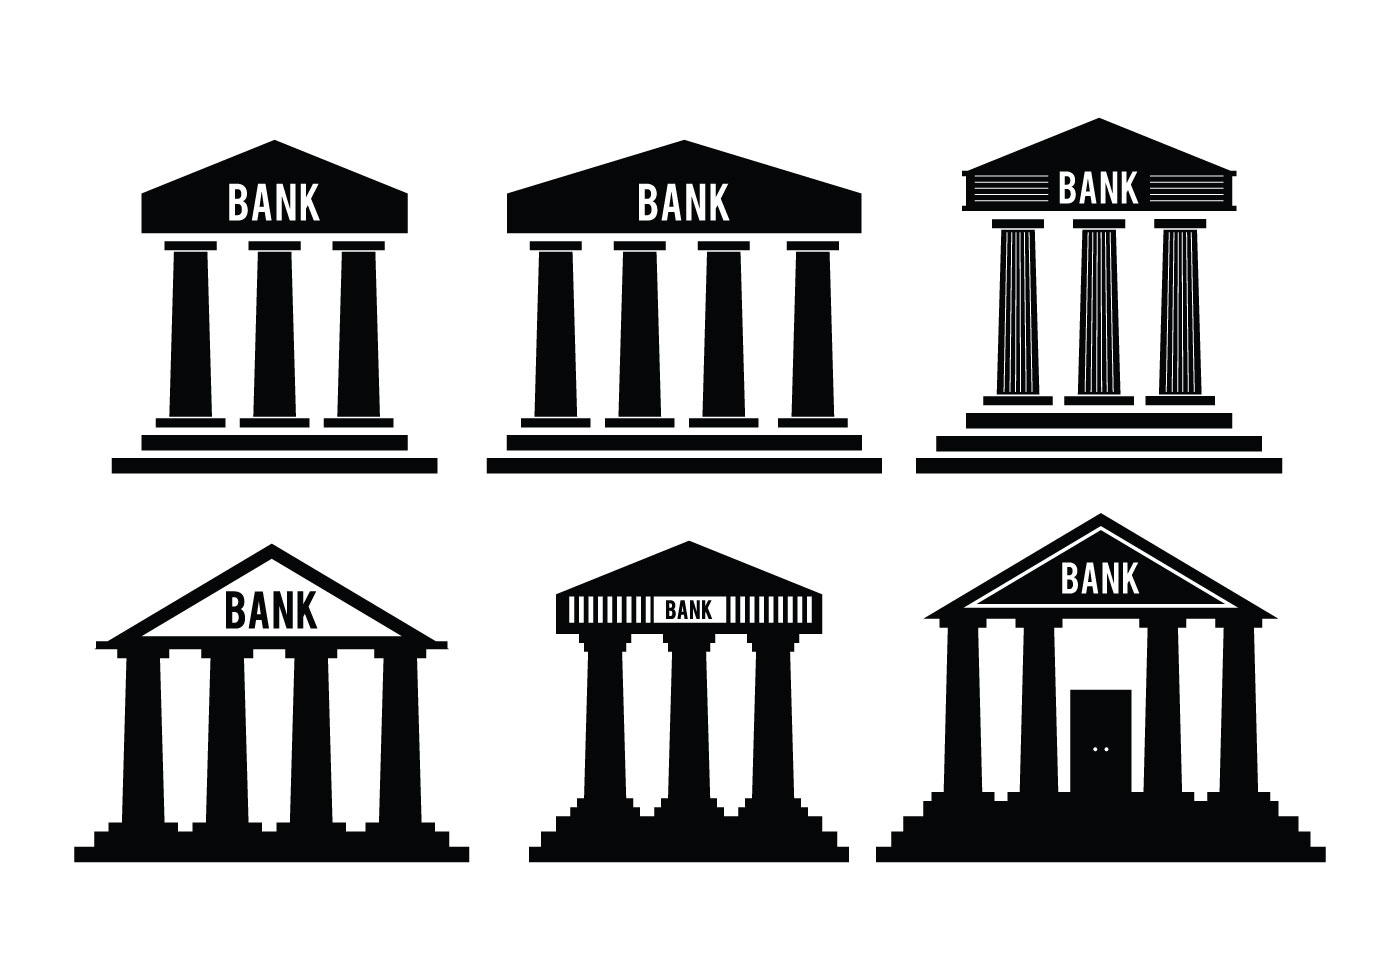 Bank icon vectors download free vector art stock graphics images biocorpaavc Gallery